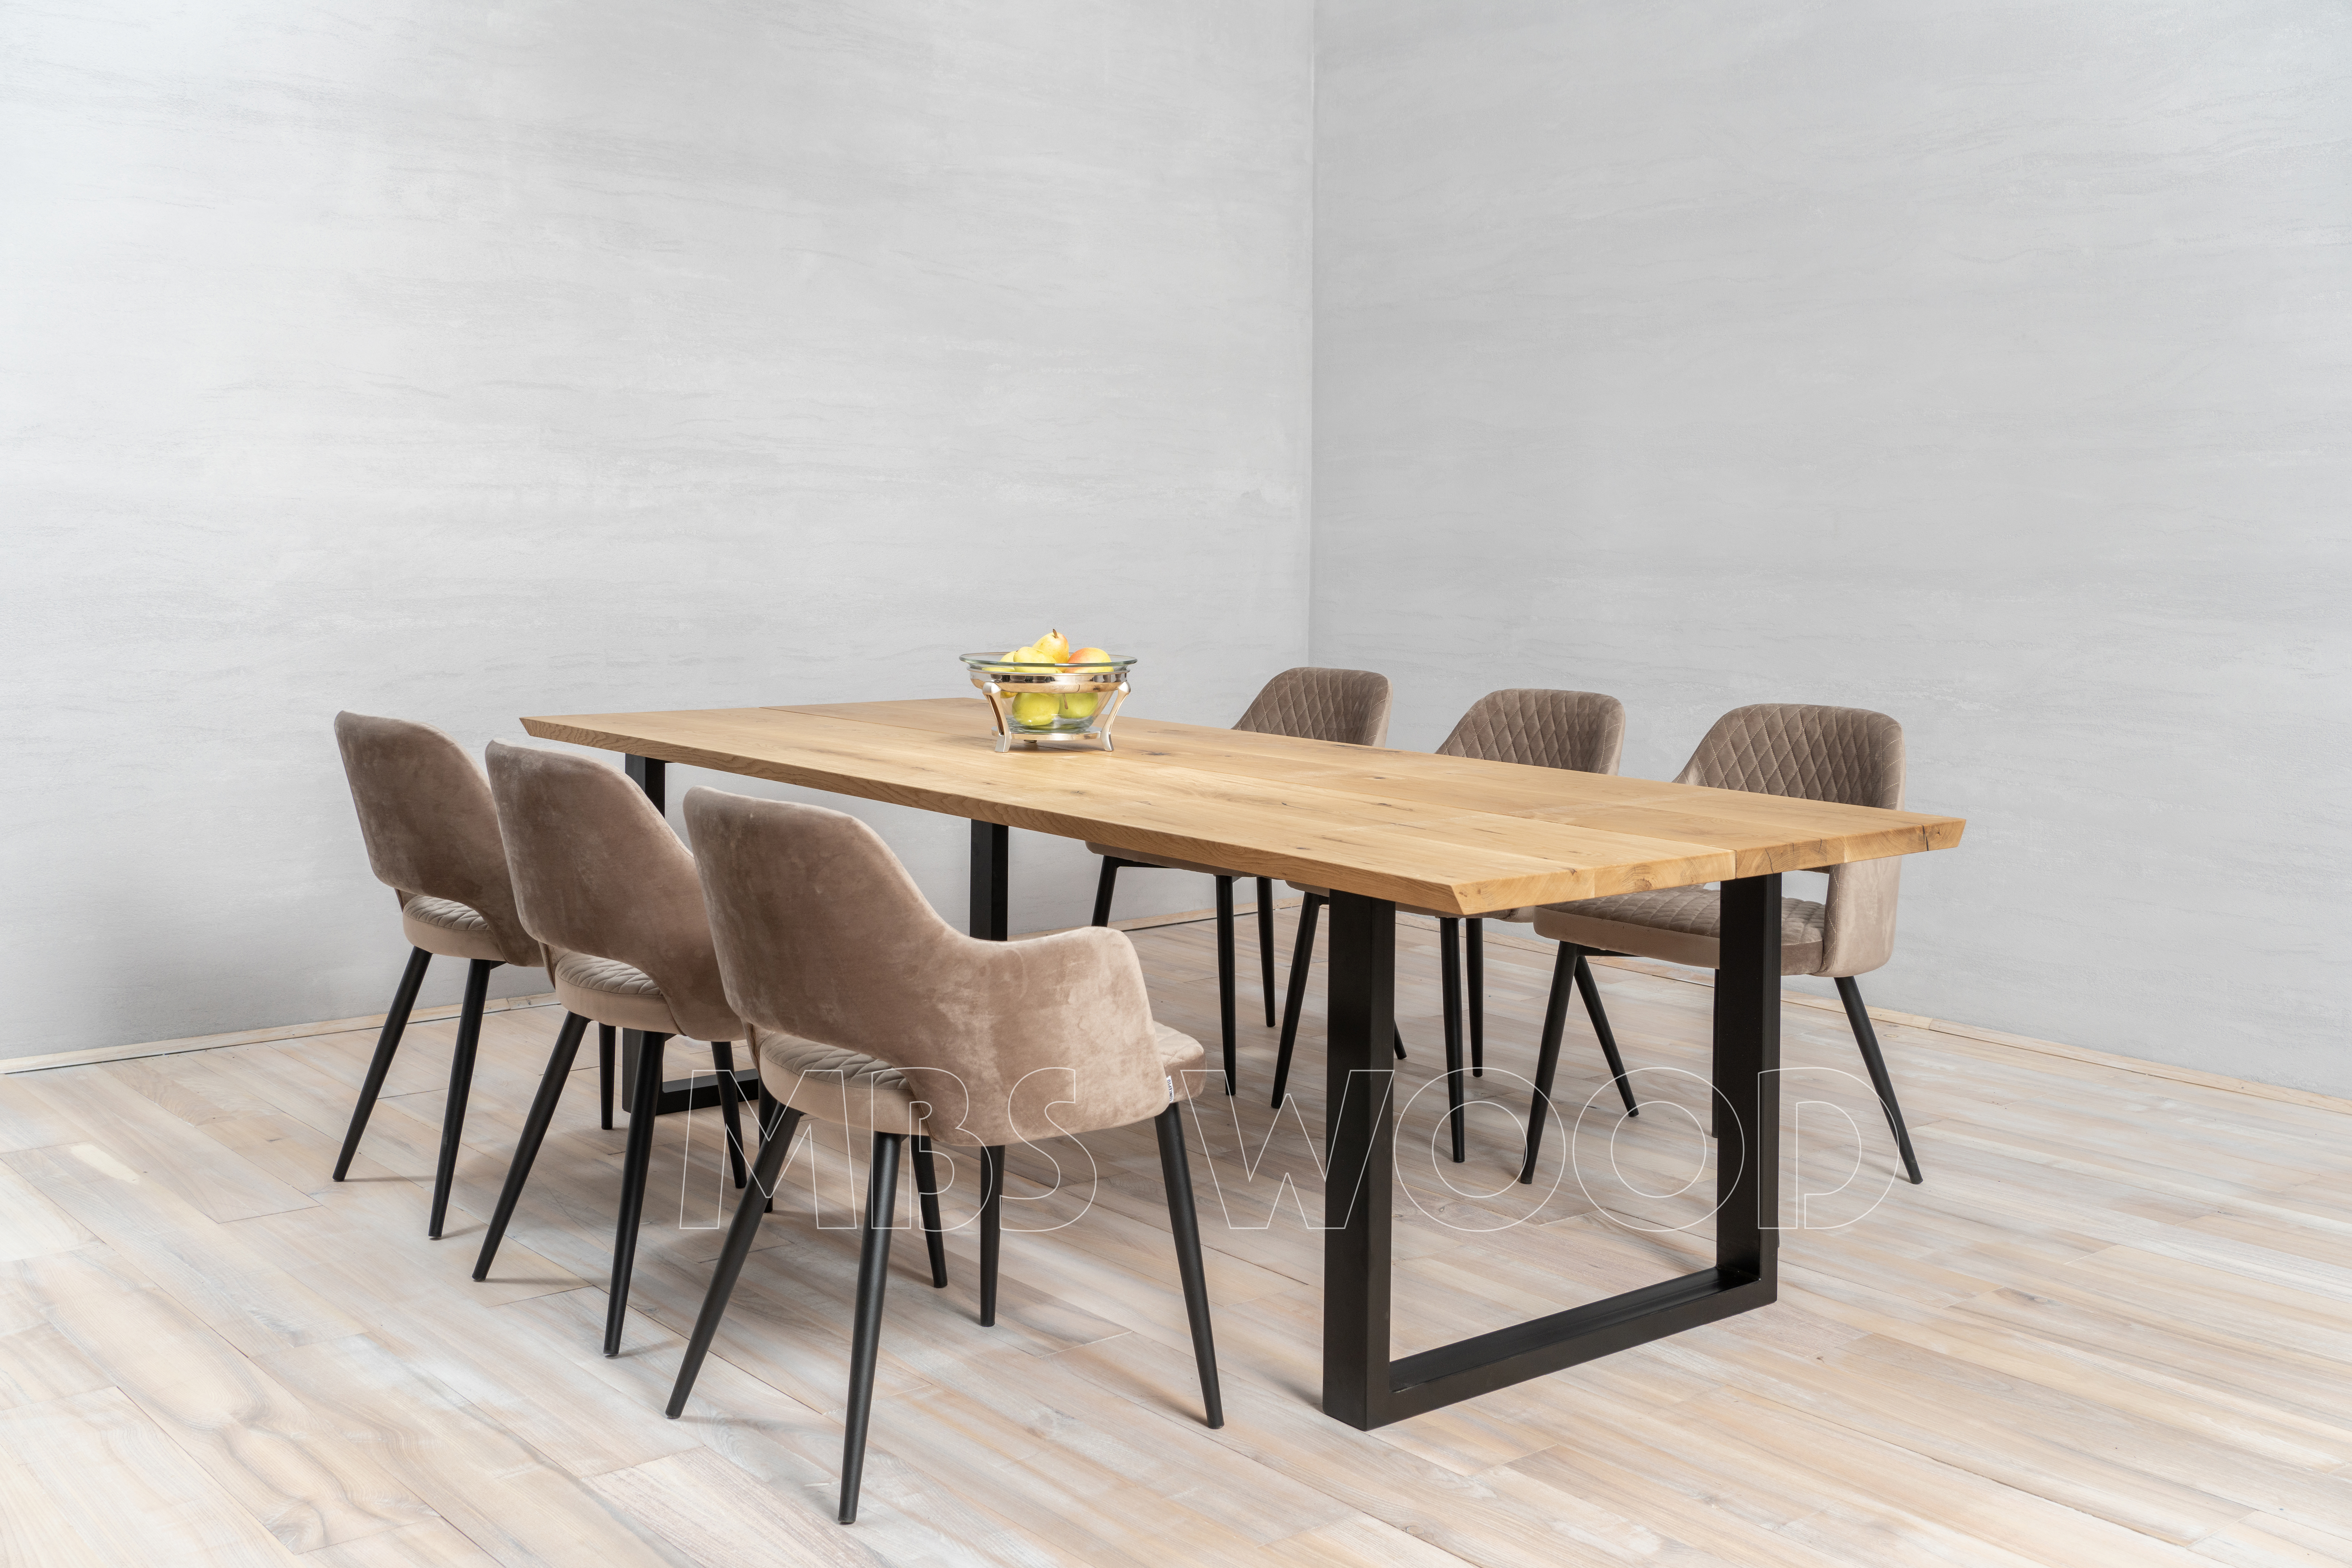 order wholesale delivery of oak dining tables mbswood.com